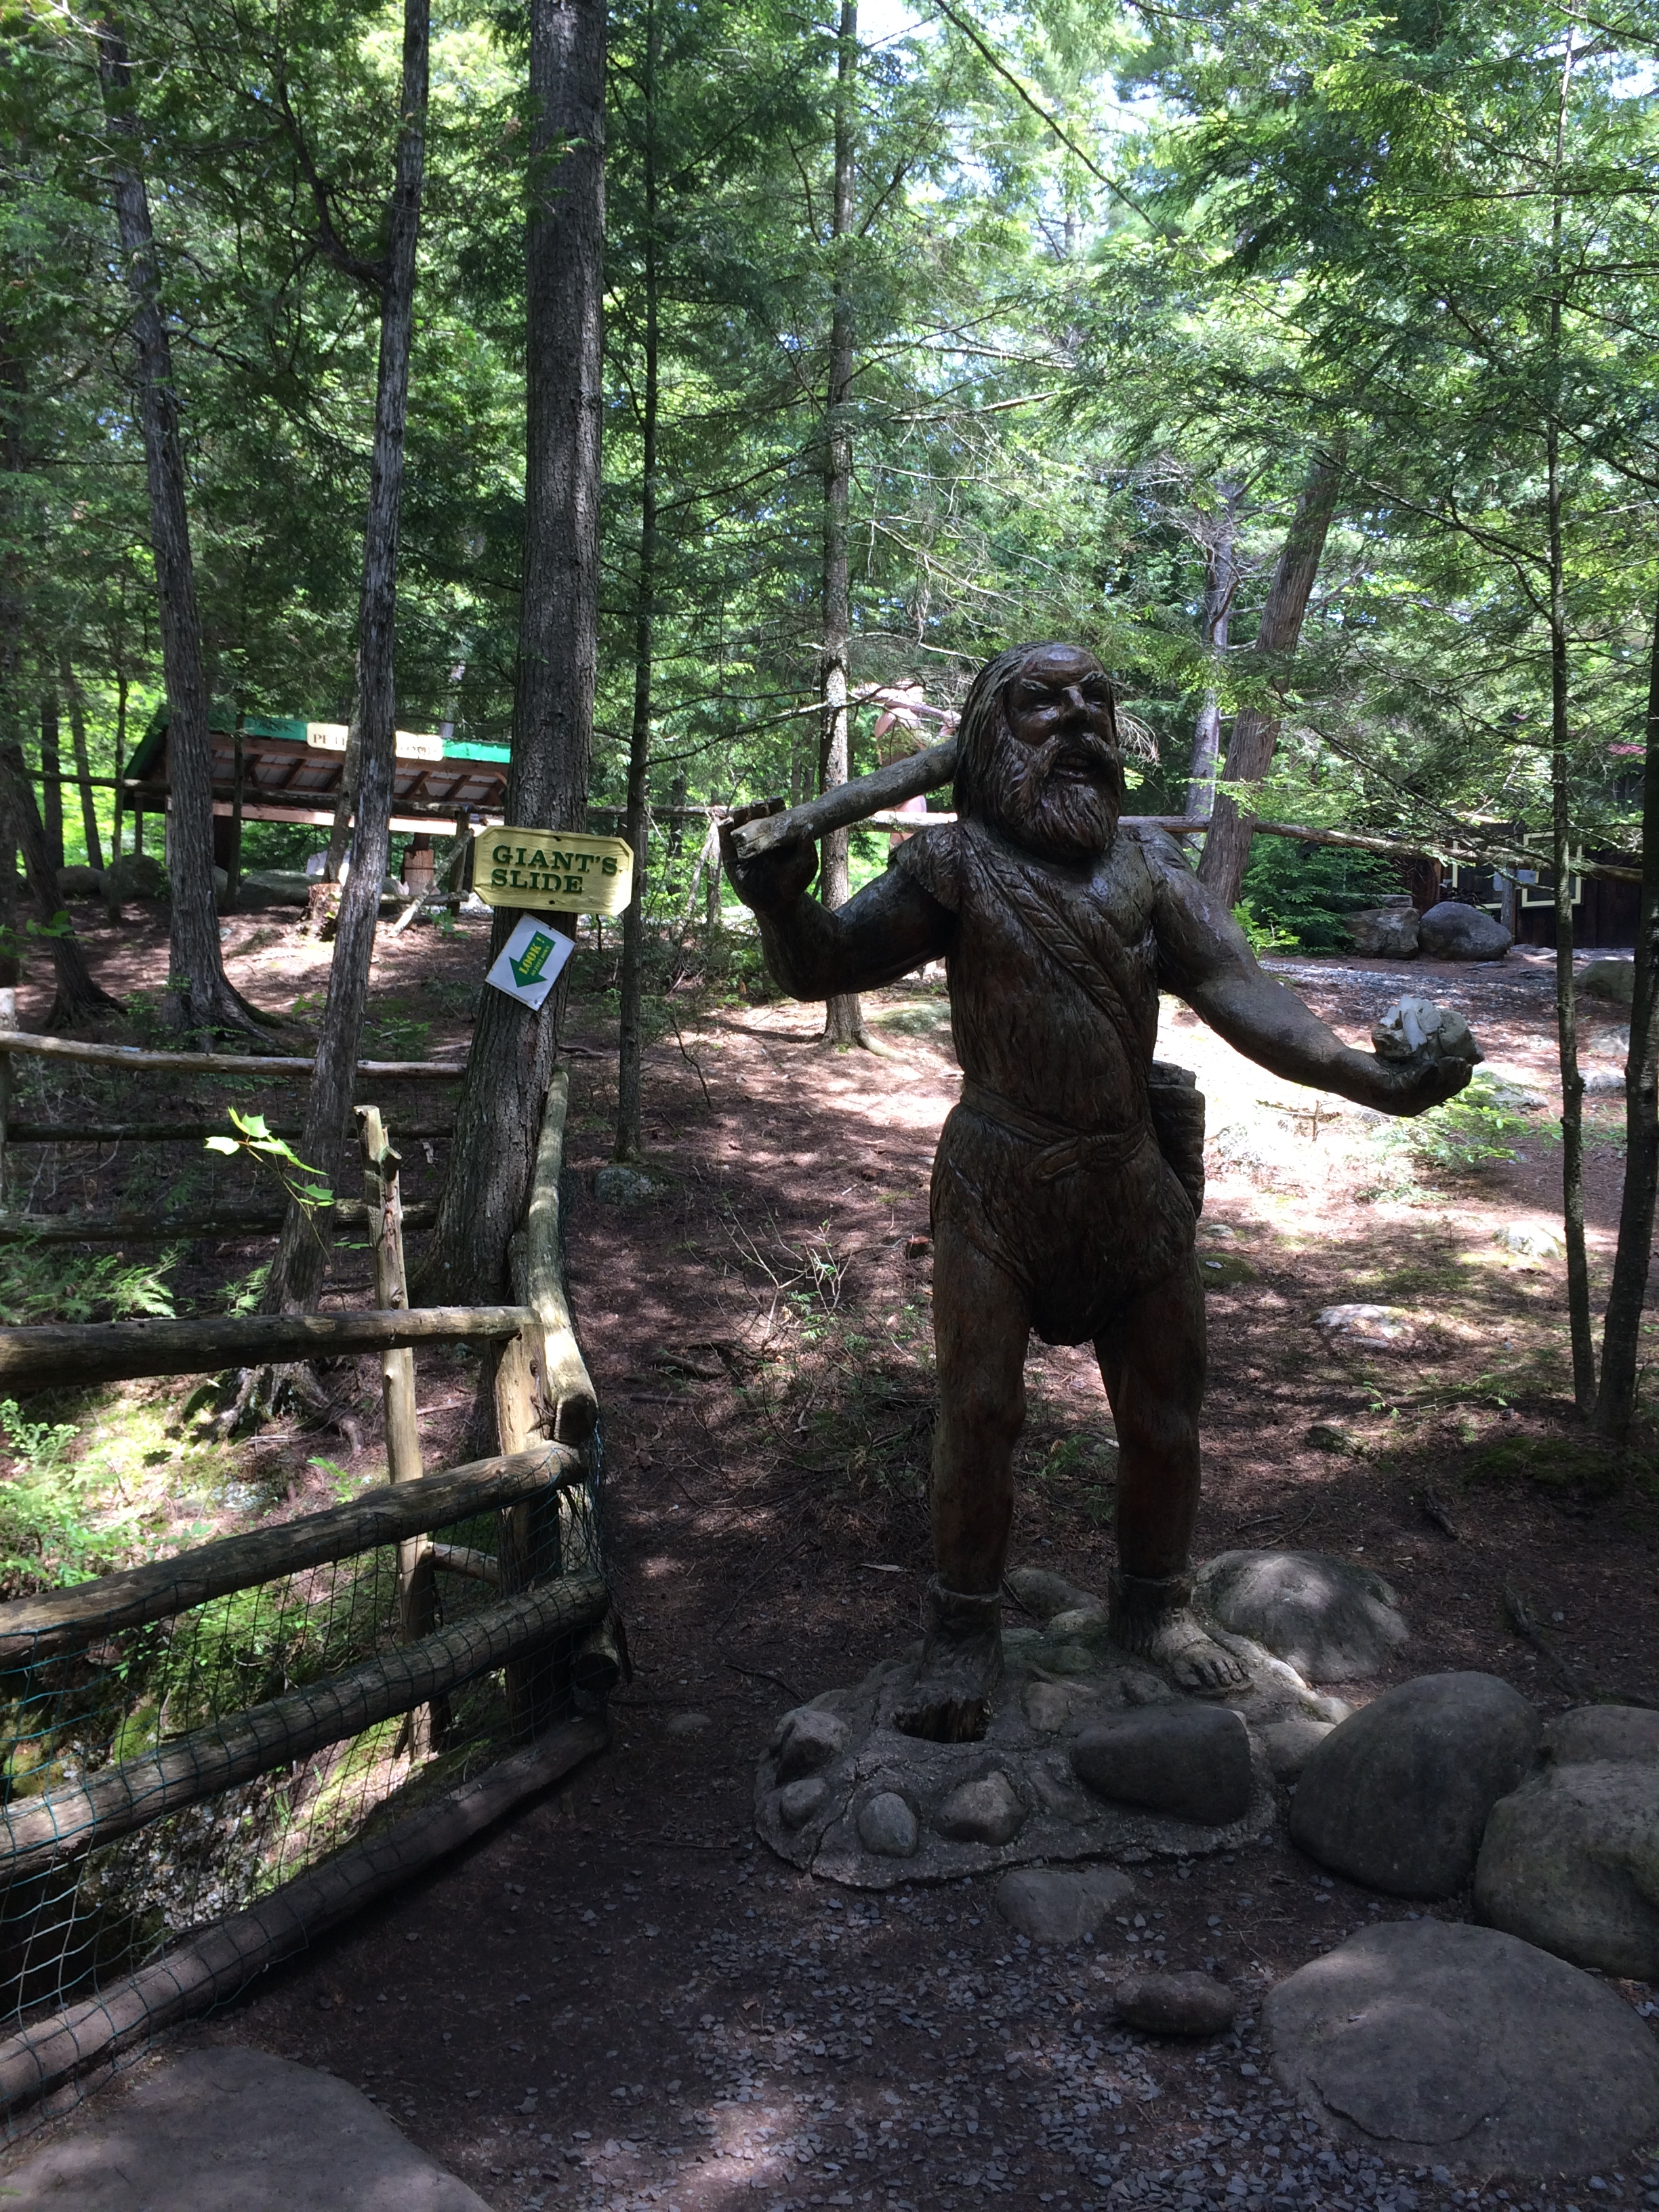 the Giant at Natural Stone Bridge & Caves